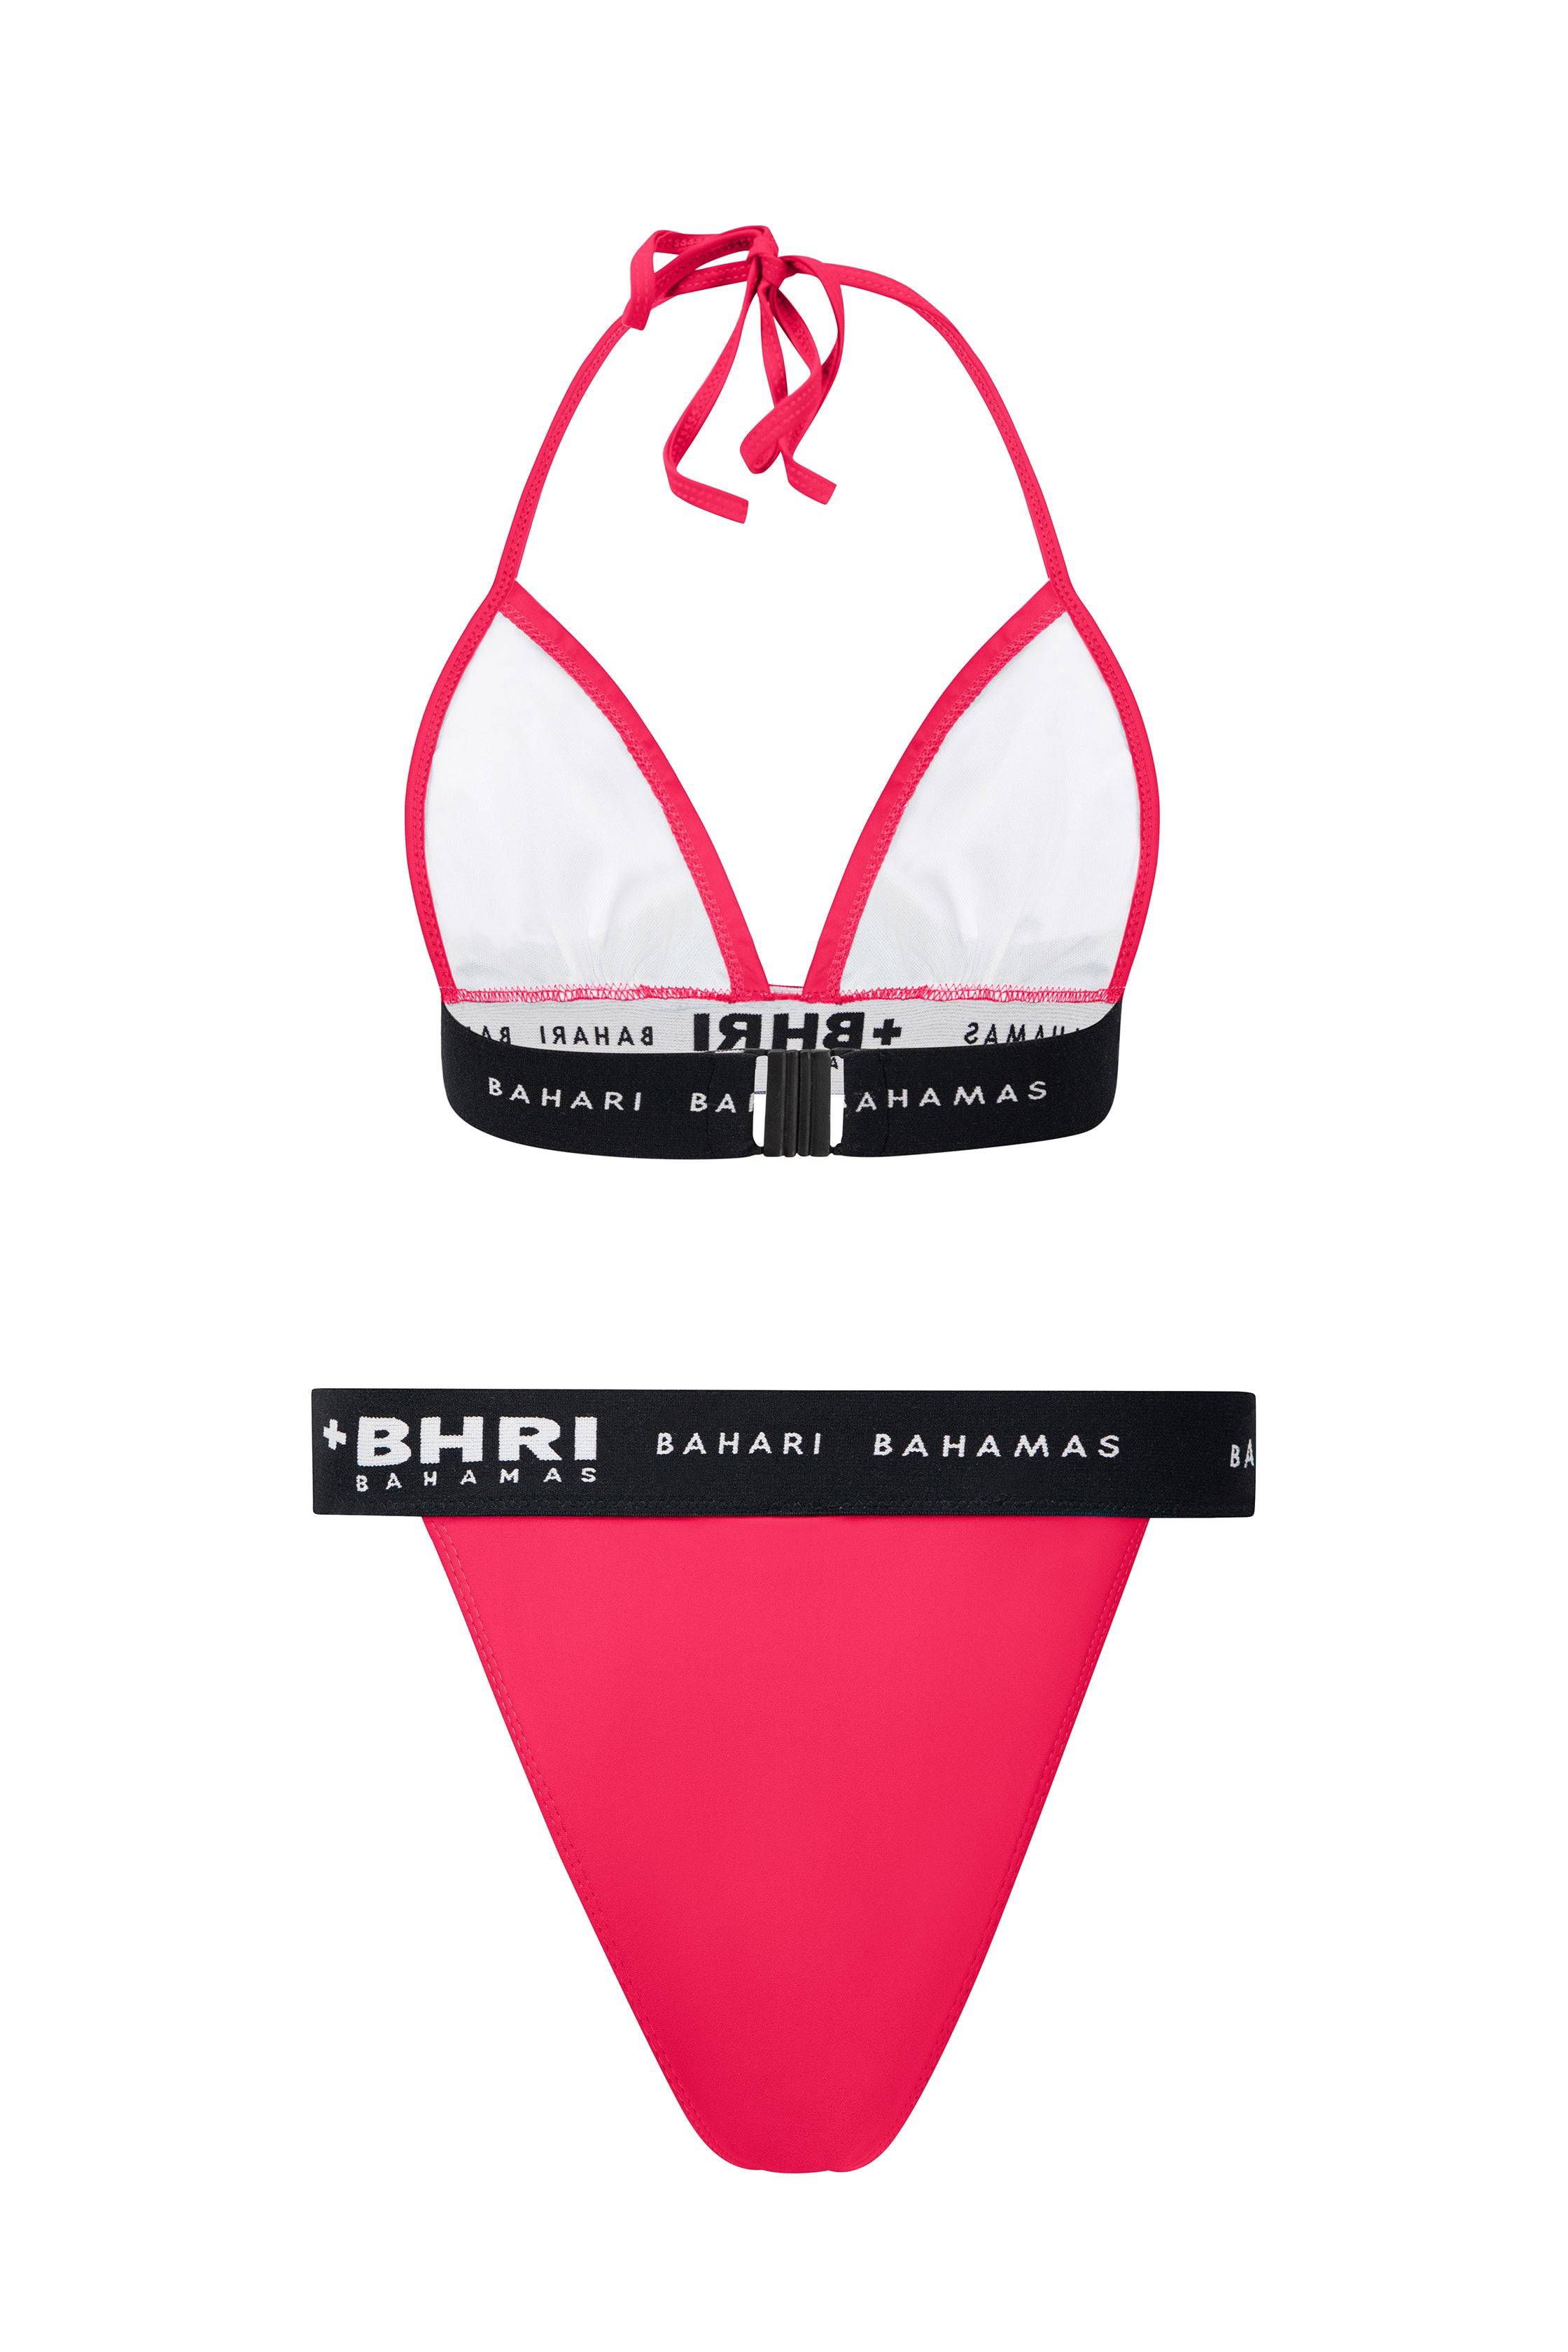 THE BILAL BIKINI- RED